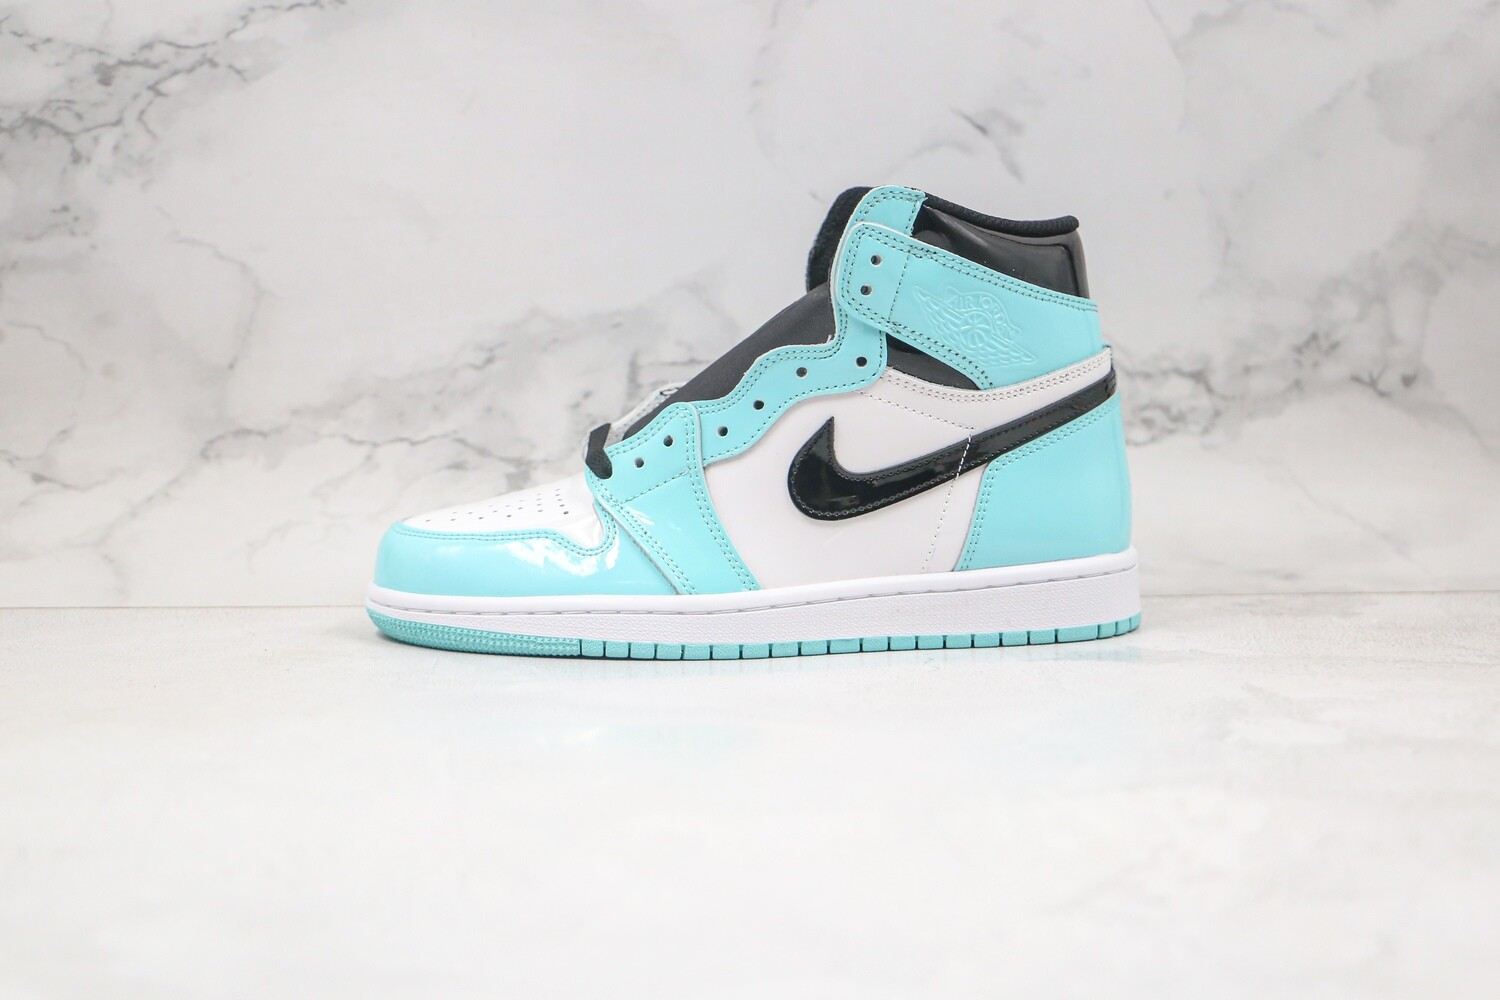 Custom Sneaker - Tiffany's Patent Leahter